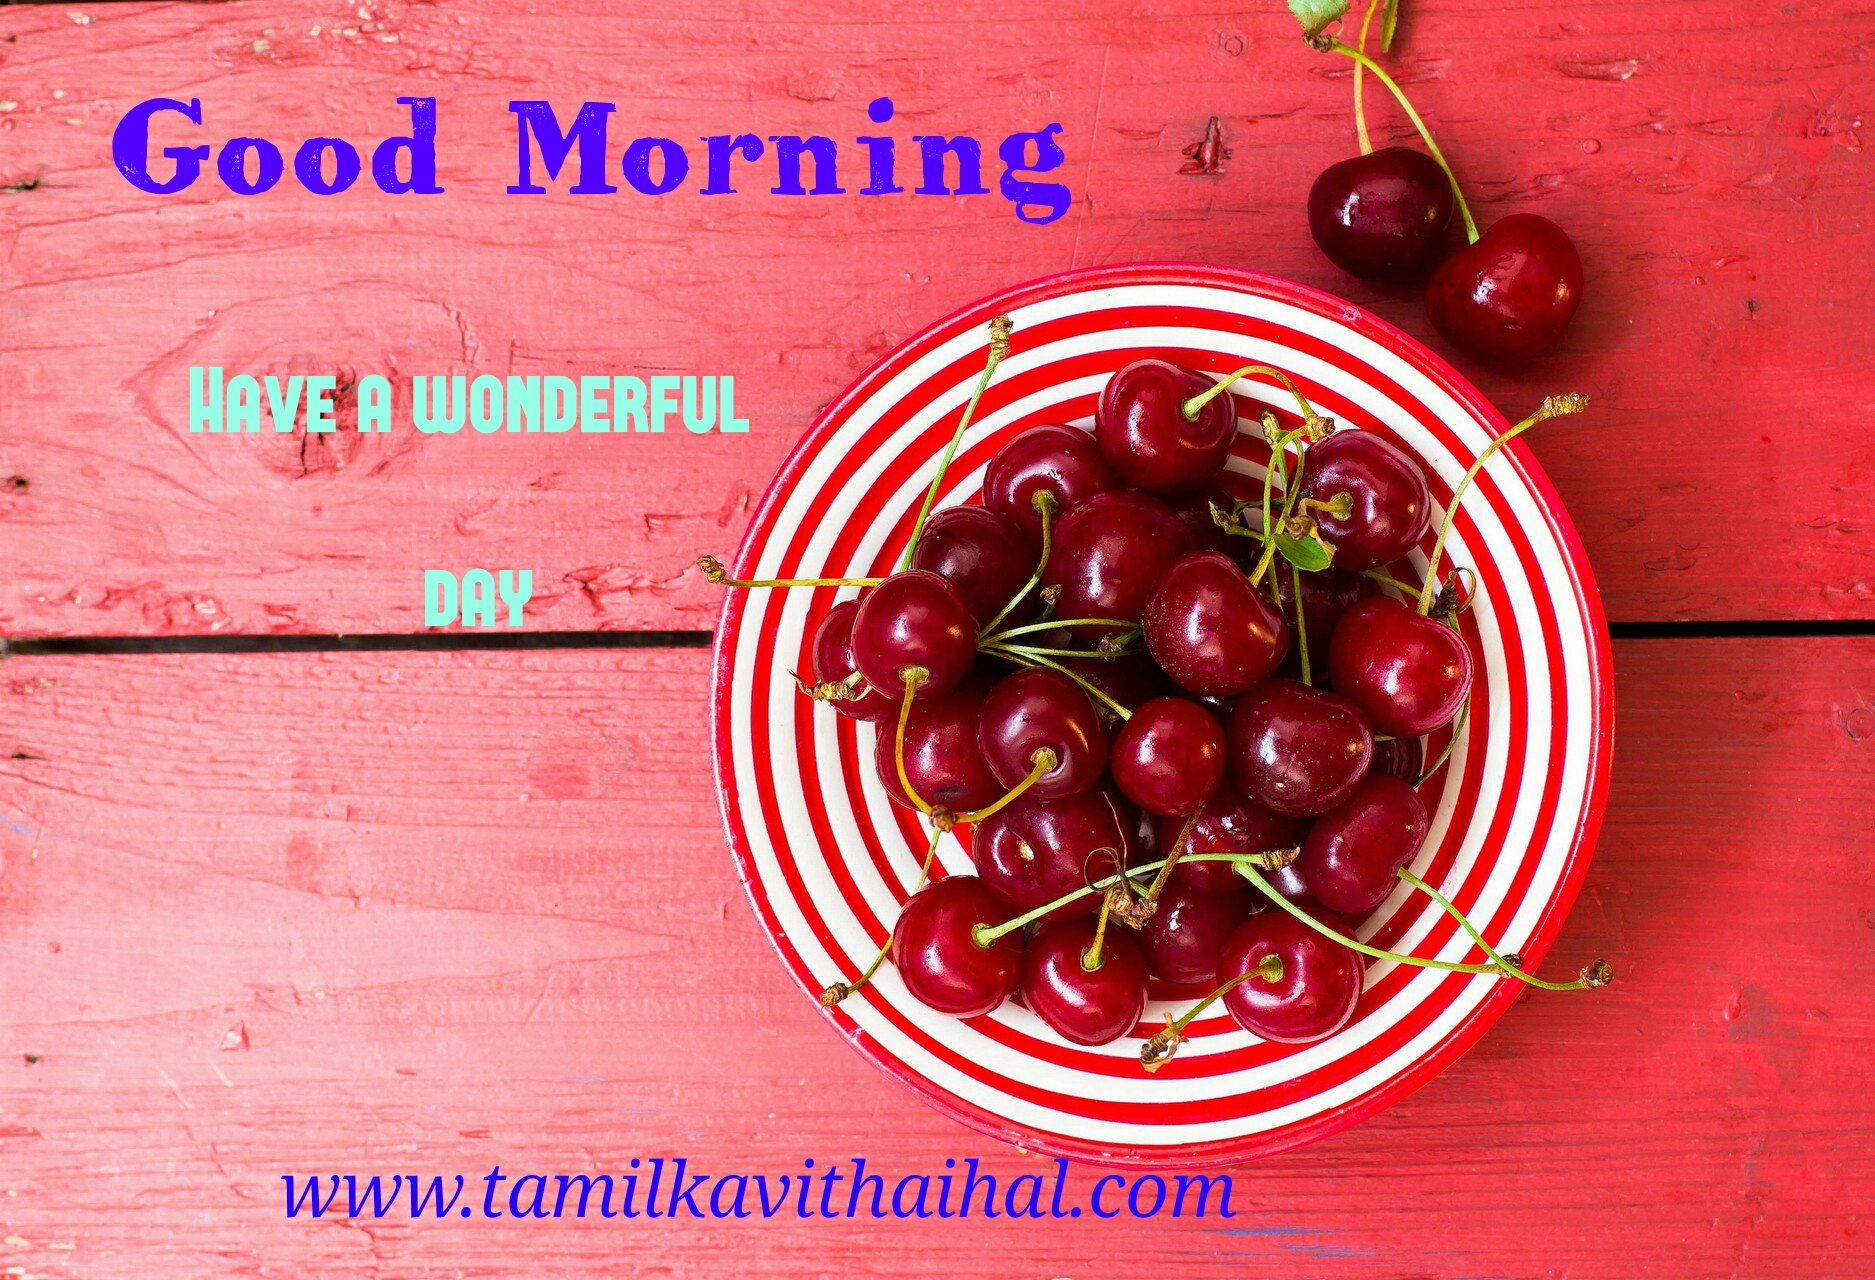 Best gud mrg quotes in tamil kalai vanakkam whatsapp images download